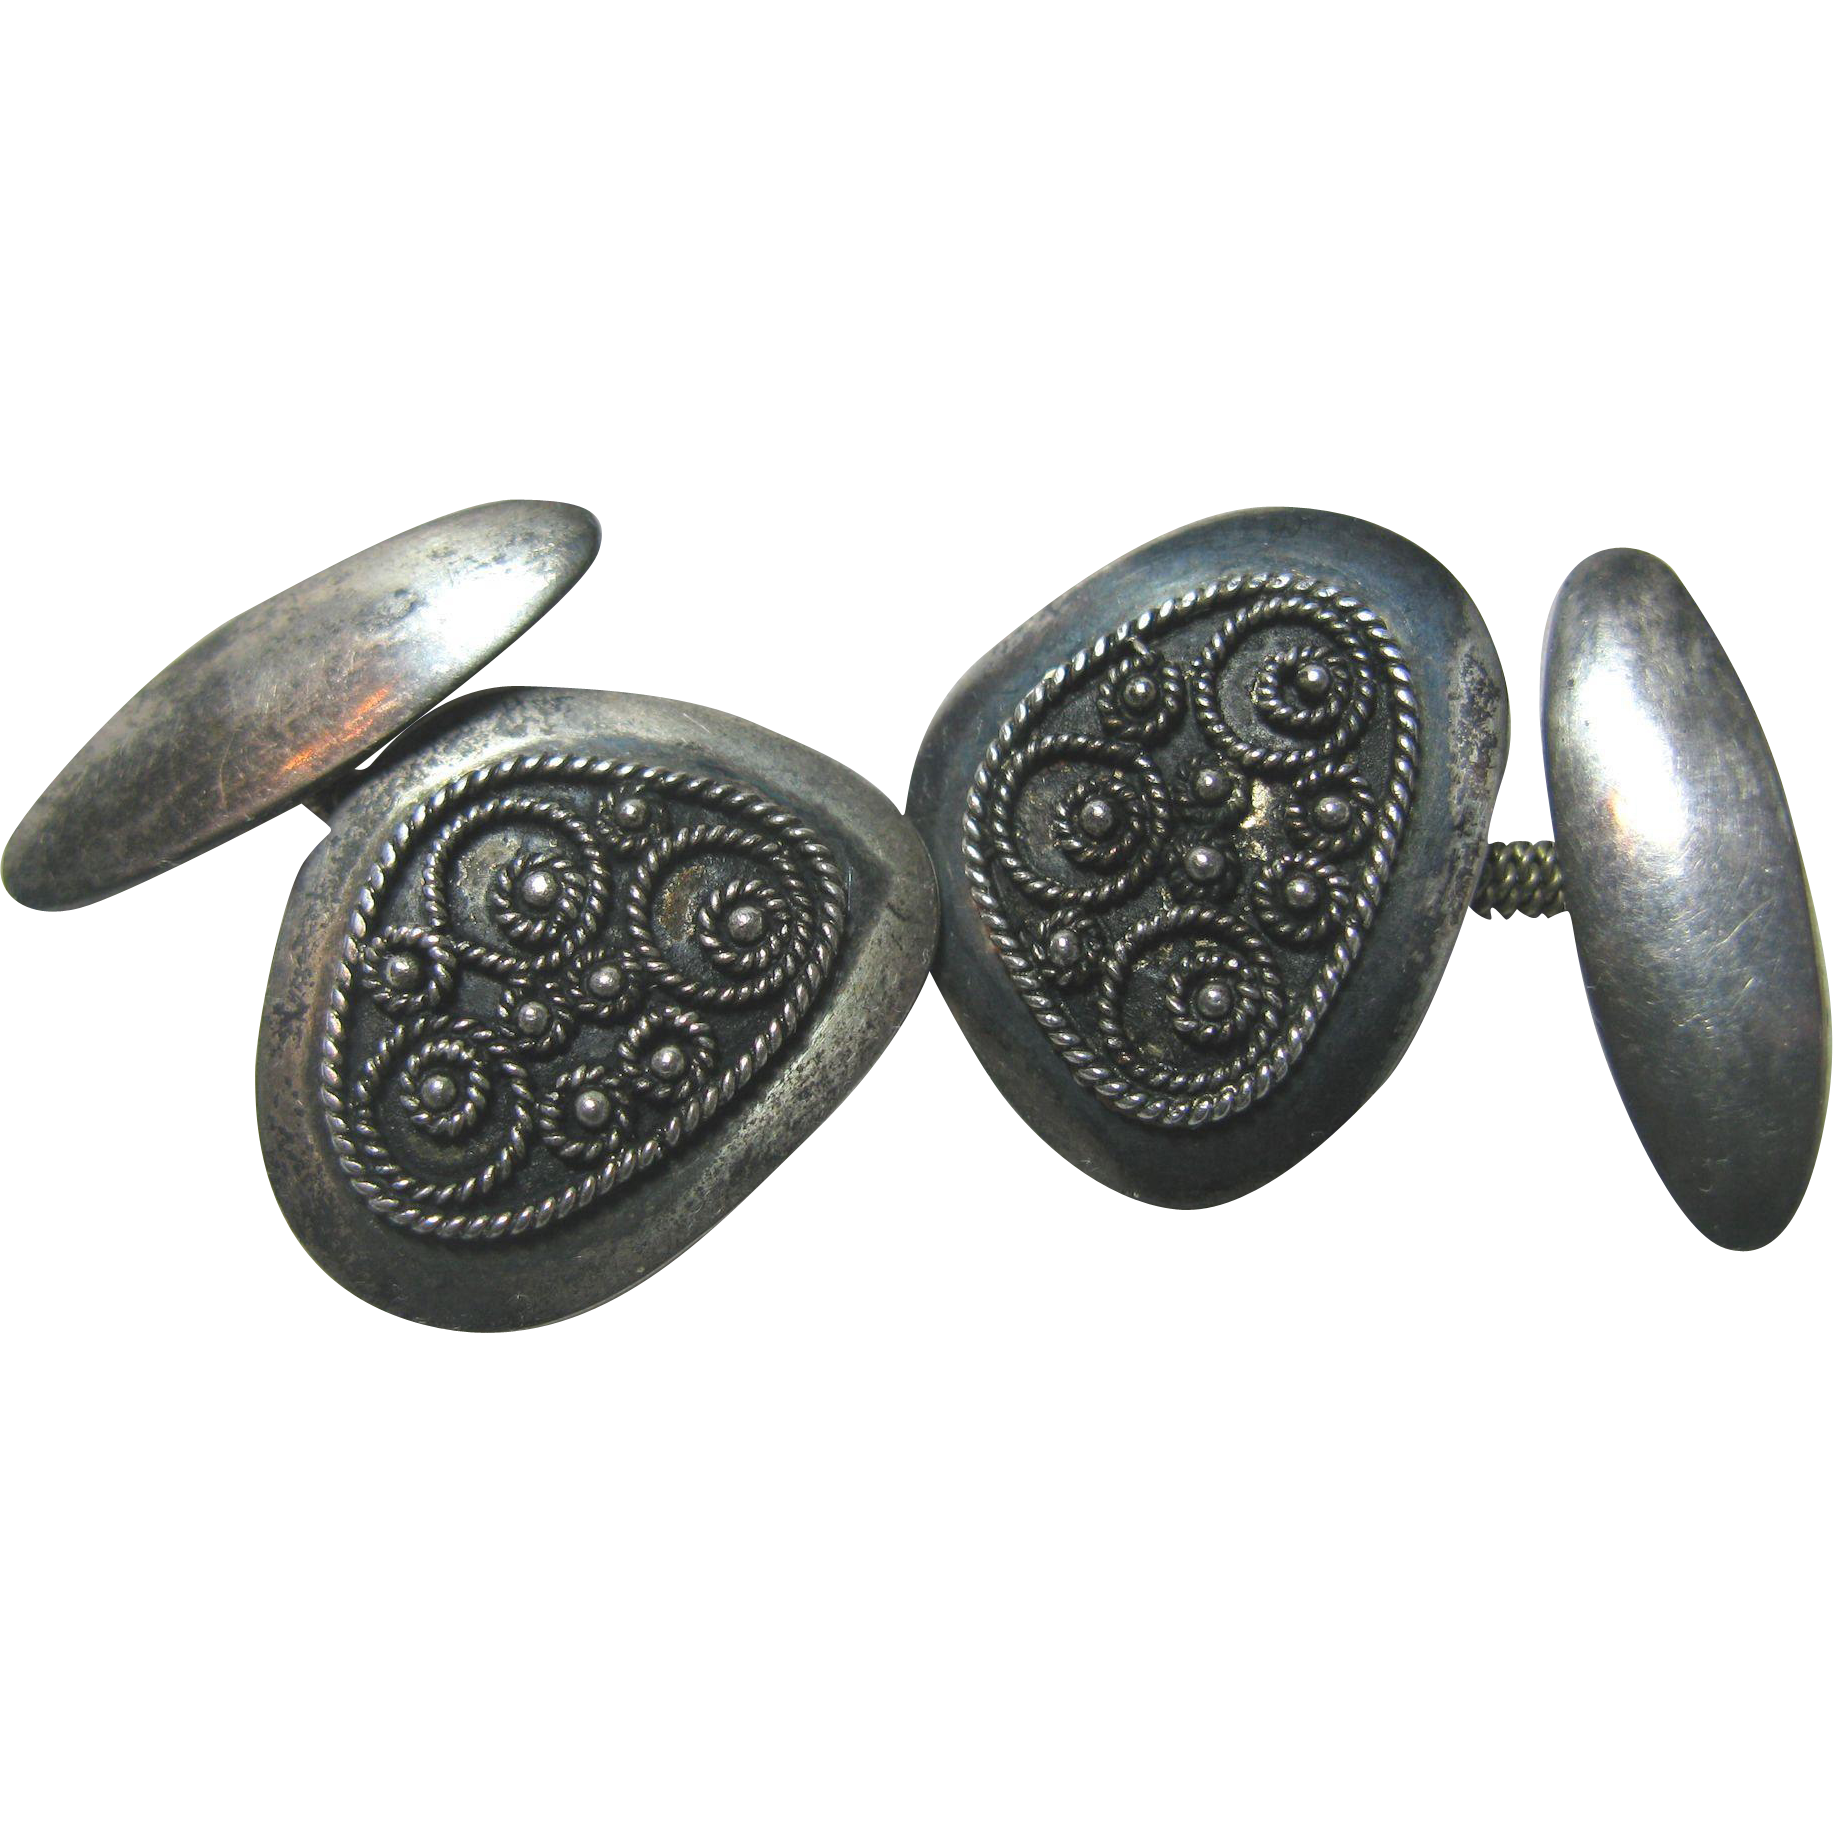 Sterling Silver Cuff Links with Coiled Wire Ornamentation